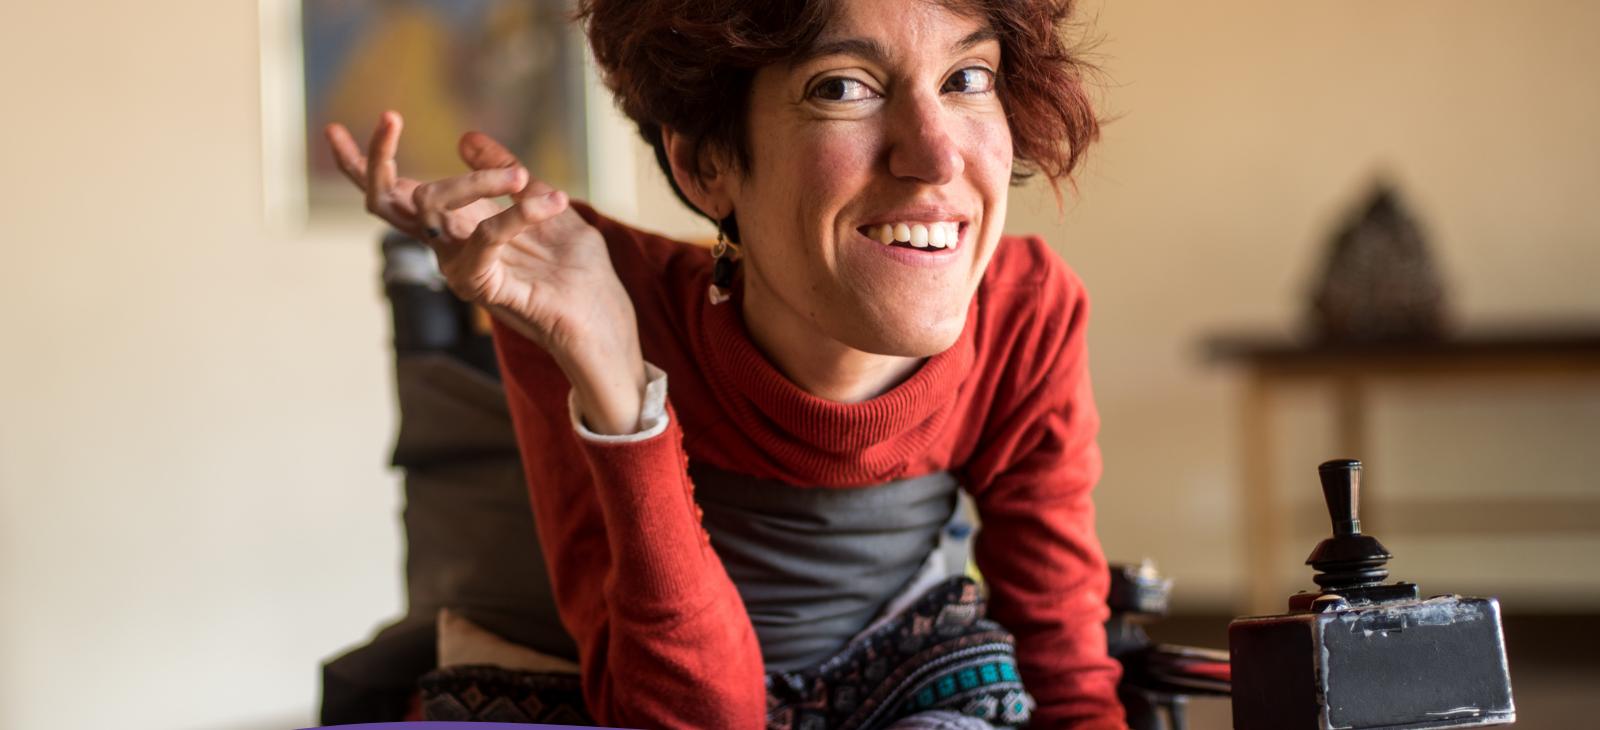 Photo of a woman with a physical disability in a mobility chair